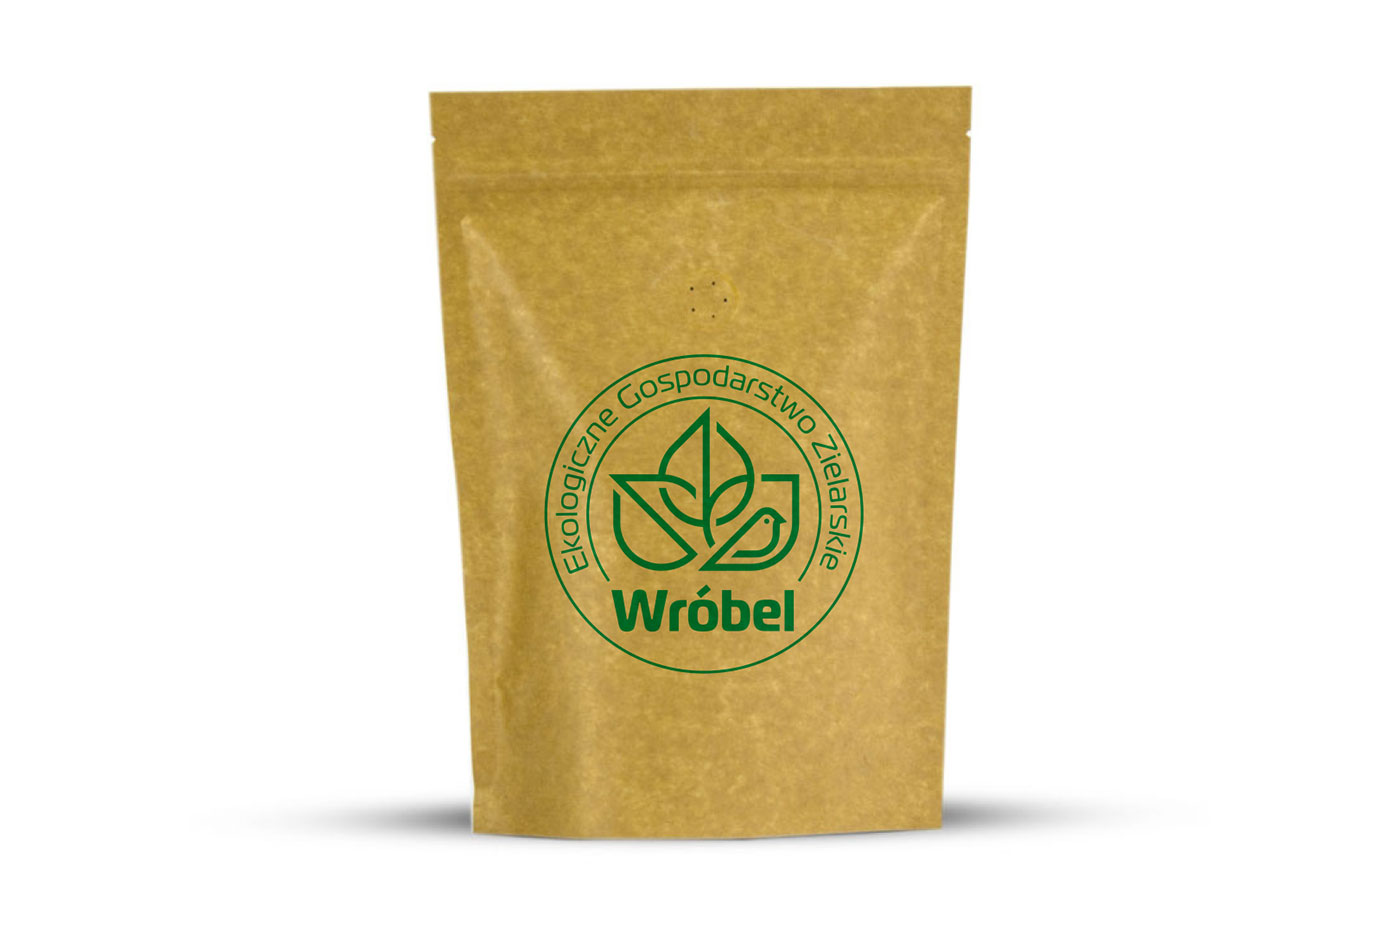 Wrobel net 7